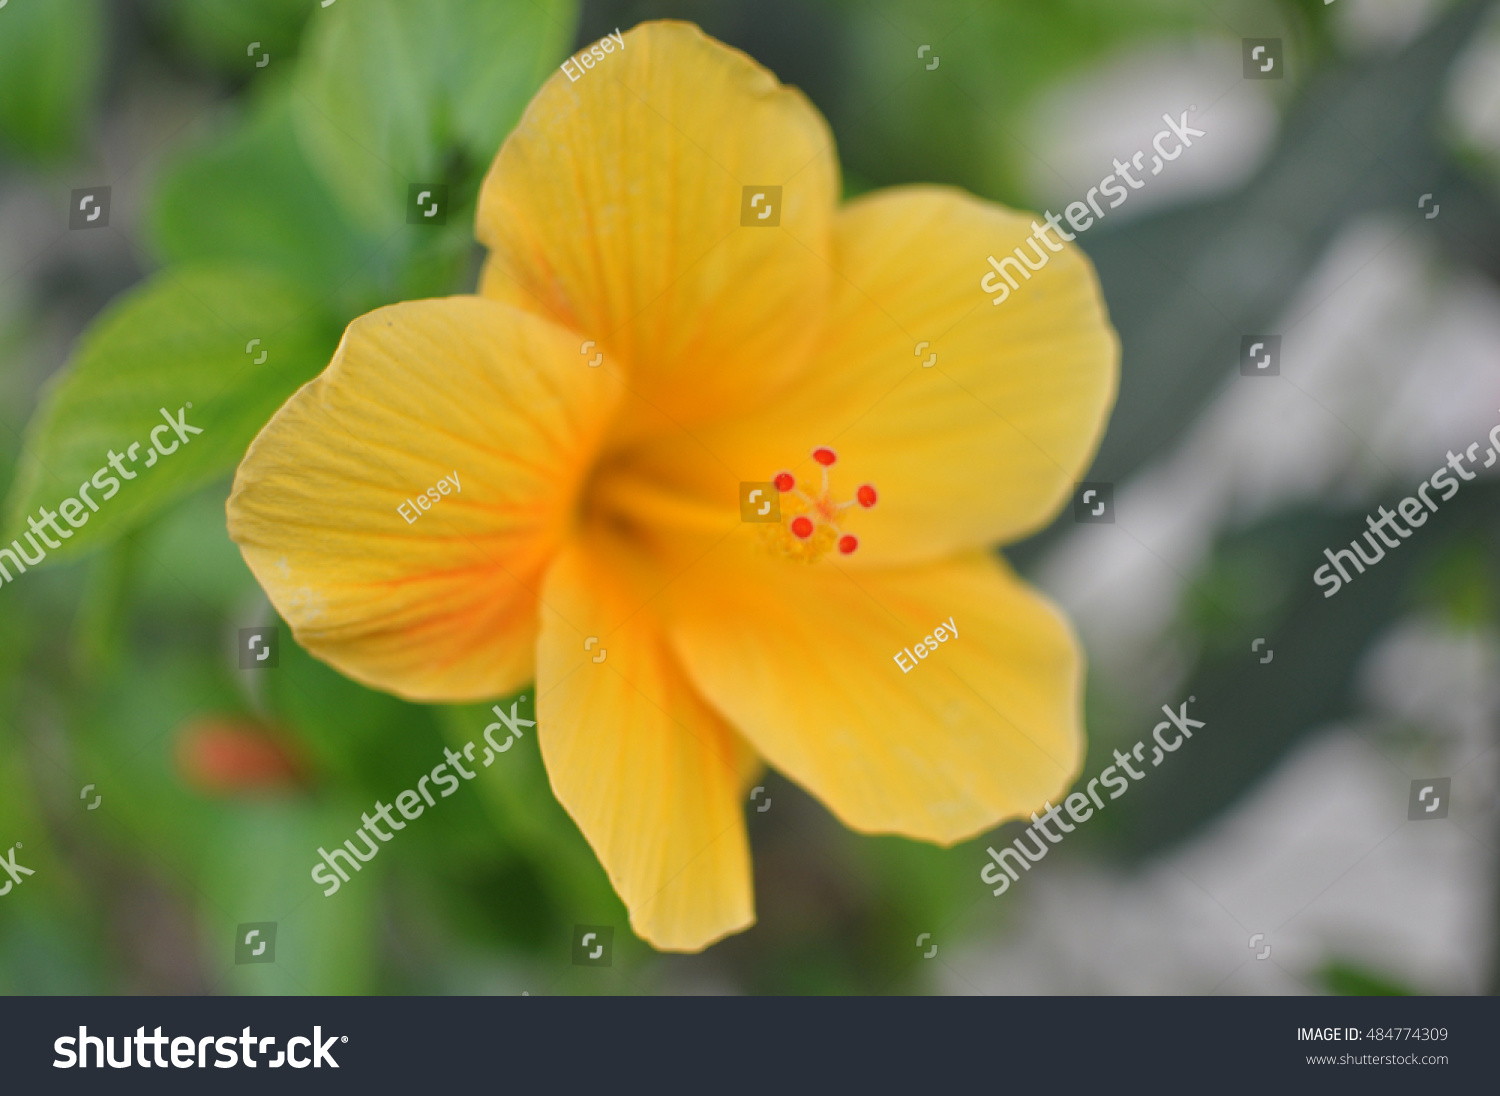 Blooming Tree With Yellow Flower In Soft Focus Beautiful Flowers